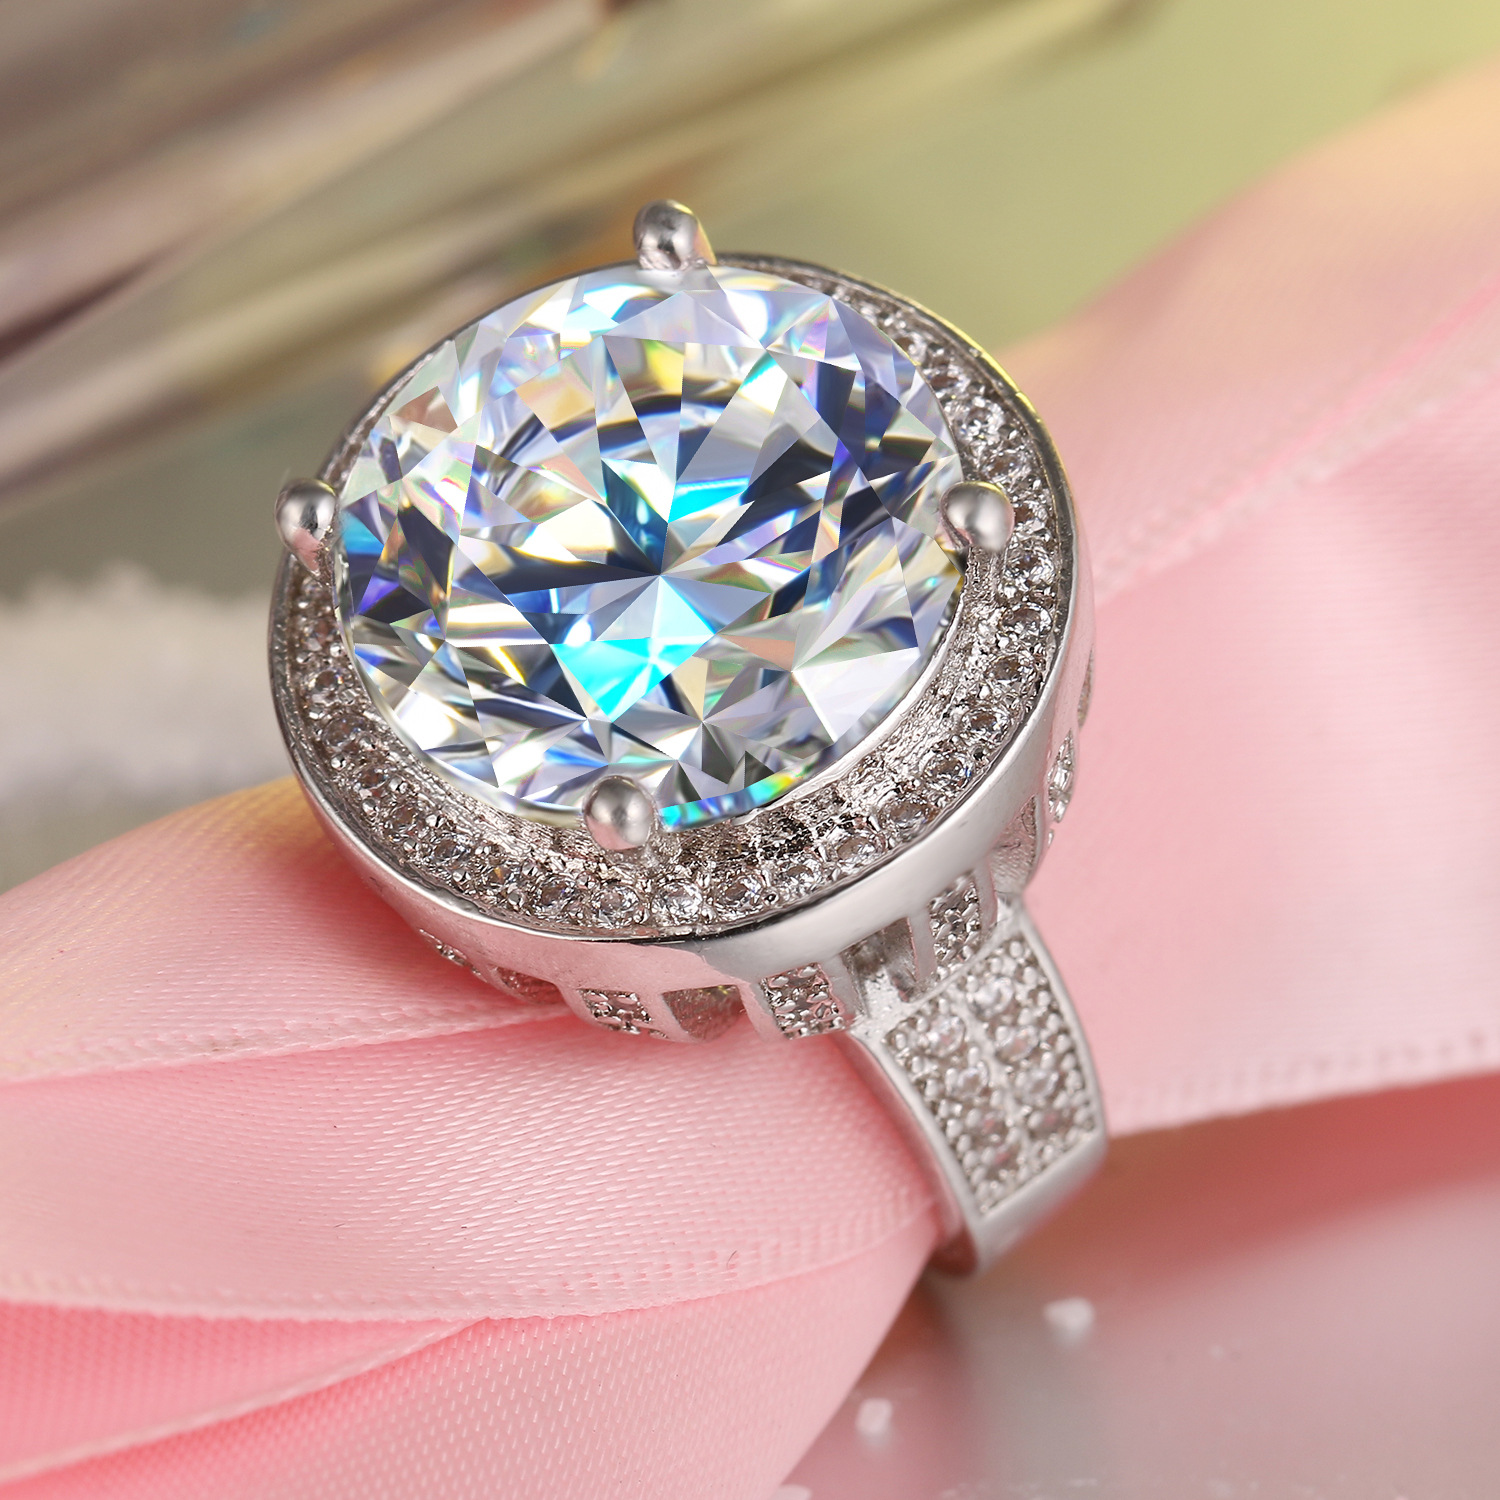 Elegant Big Diamond Engagement Rings for Women - Best Jewelry